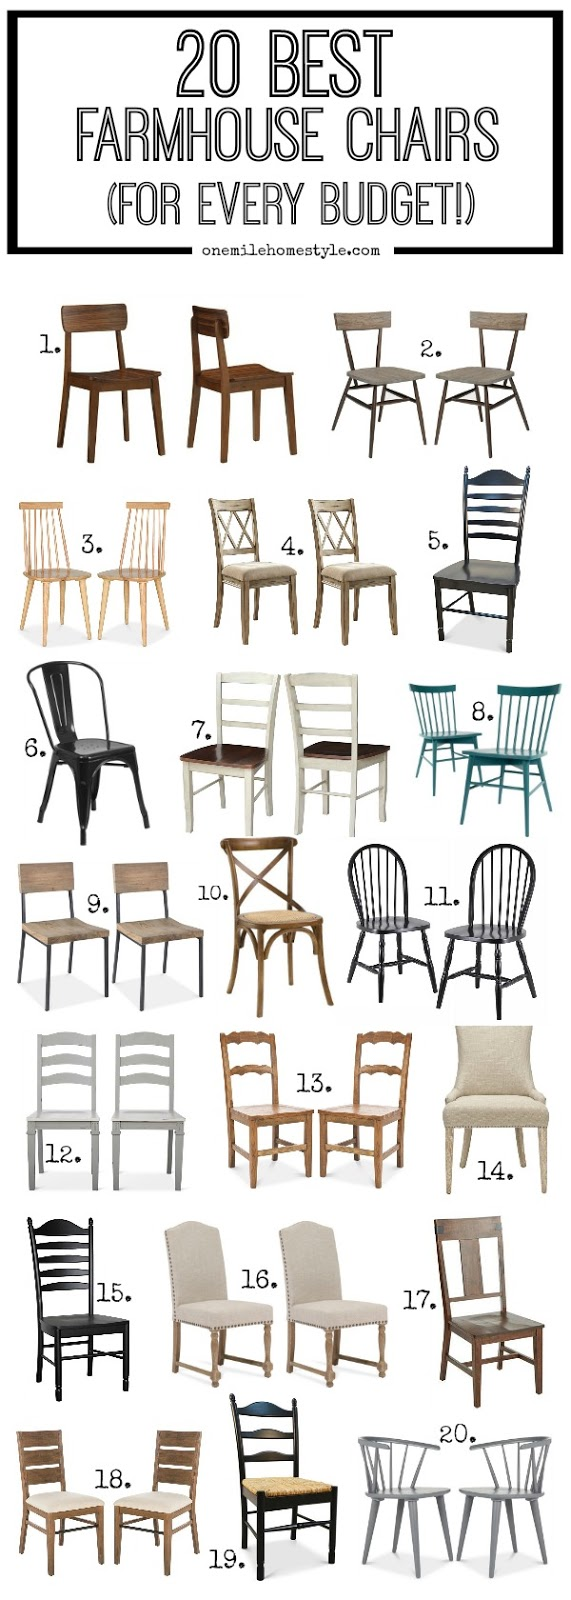 20 Best Farmhouse Dining Room Chairs for Every Budget